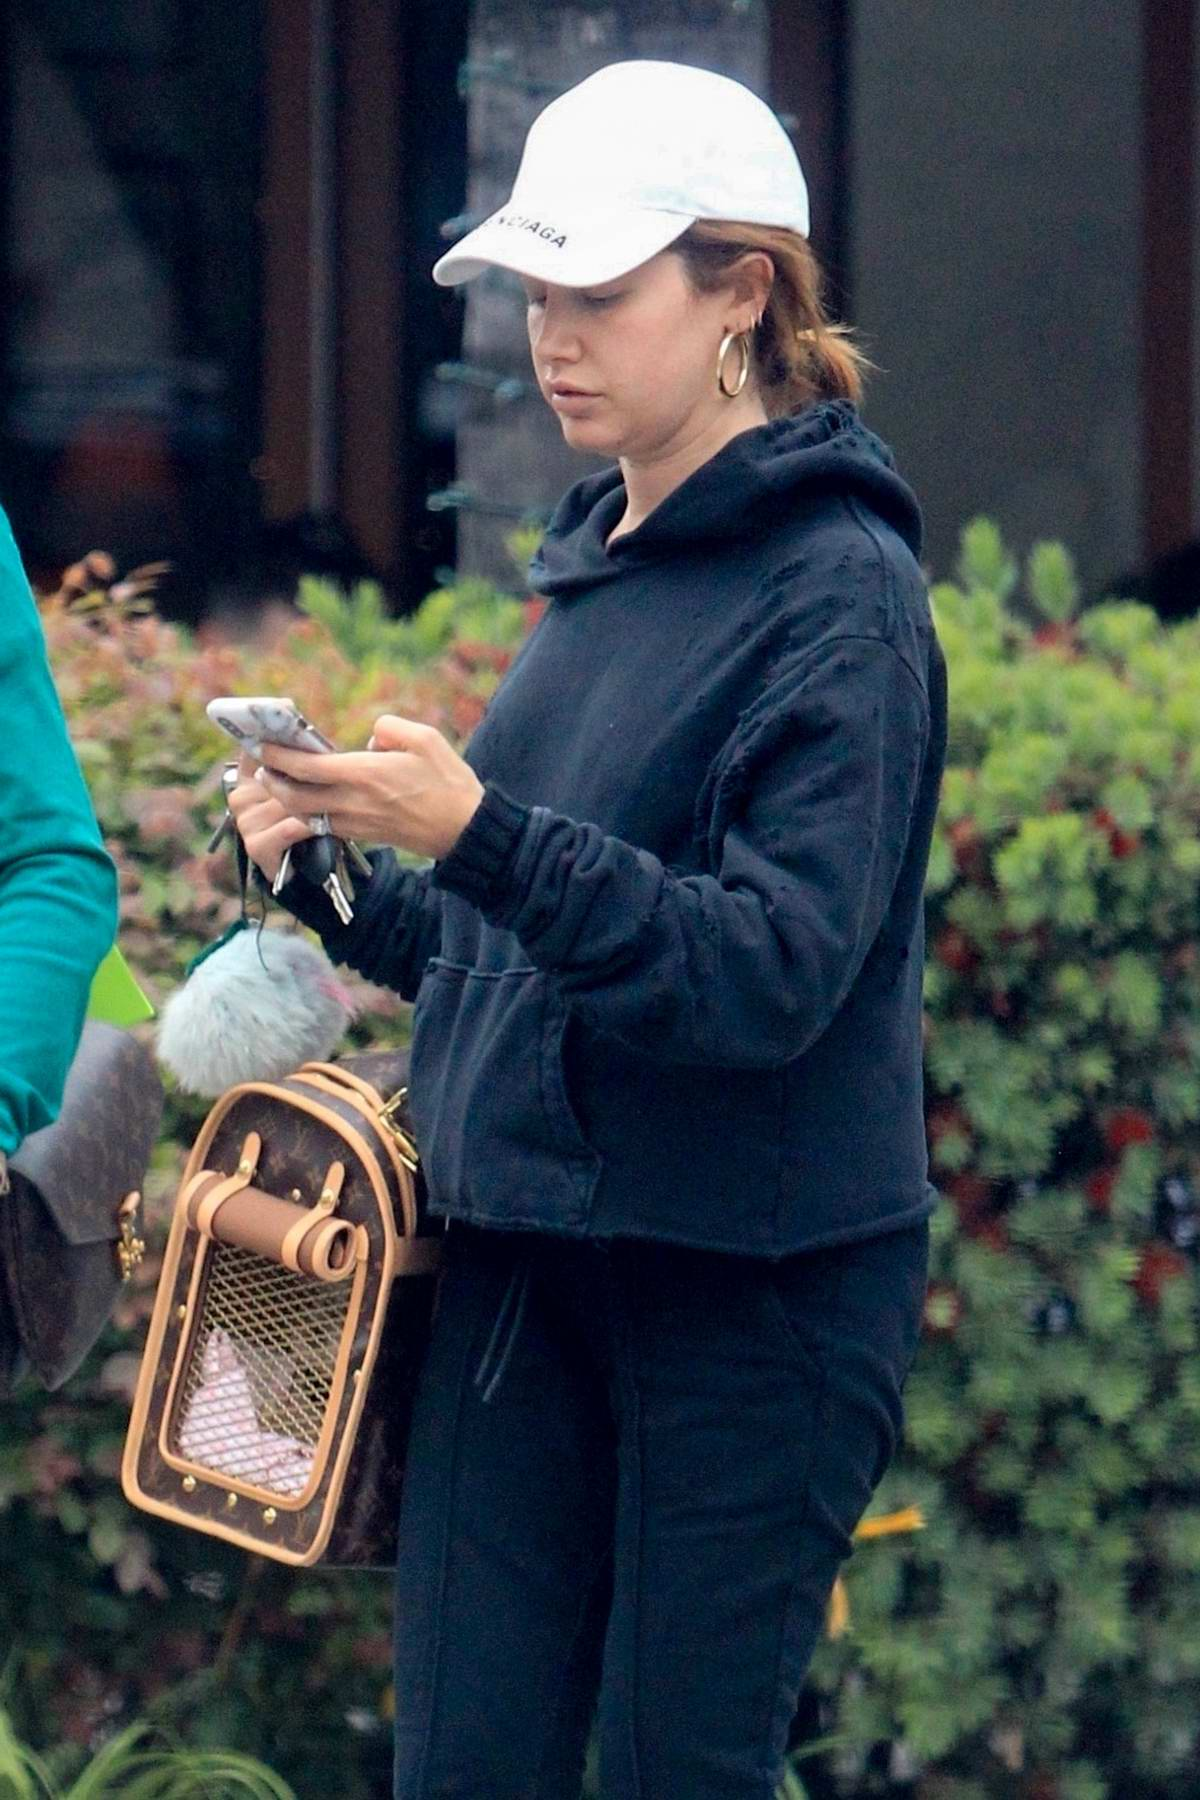 ashley tisdale goes shopping with her mom and dog in ...